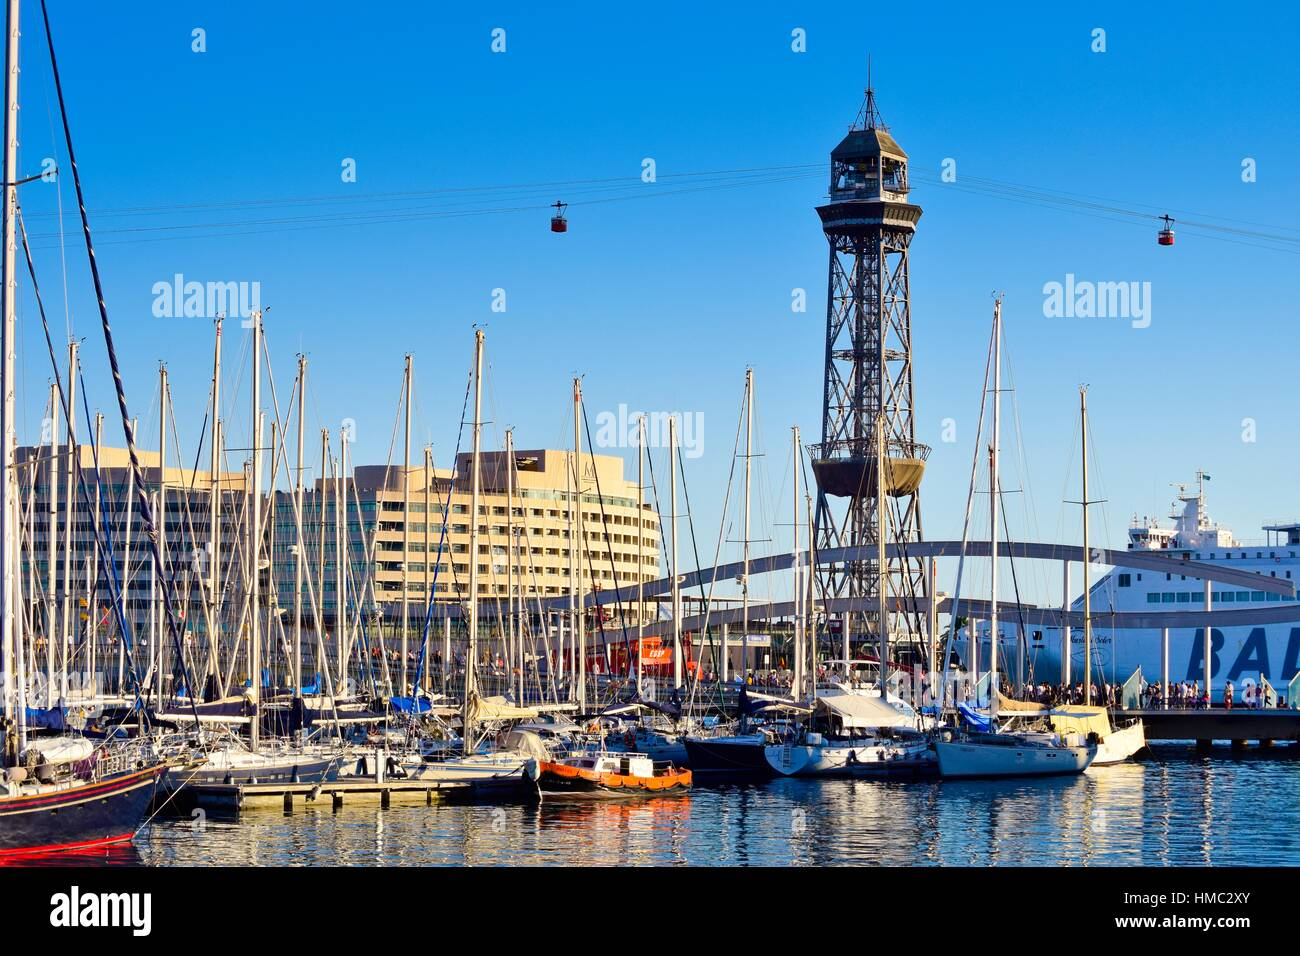 Old Harbor, Old Port, Port Vell. Rambla de Mar Bridge, World Trade Center building and Teleferic Tower in background. - Stock Image